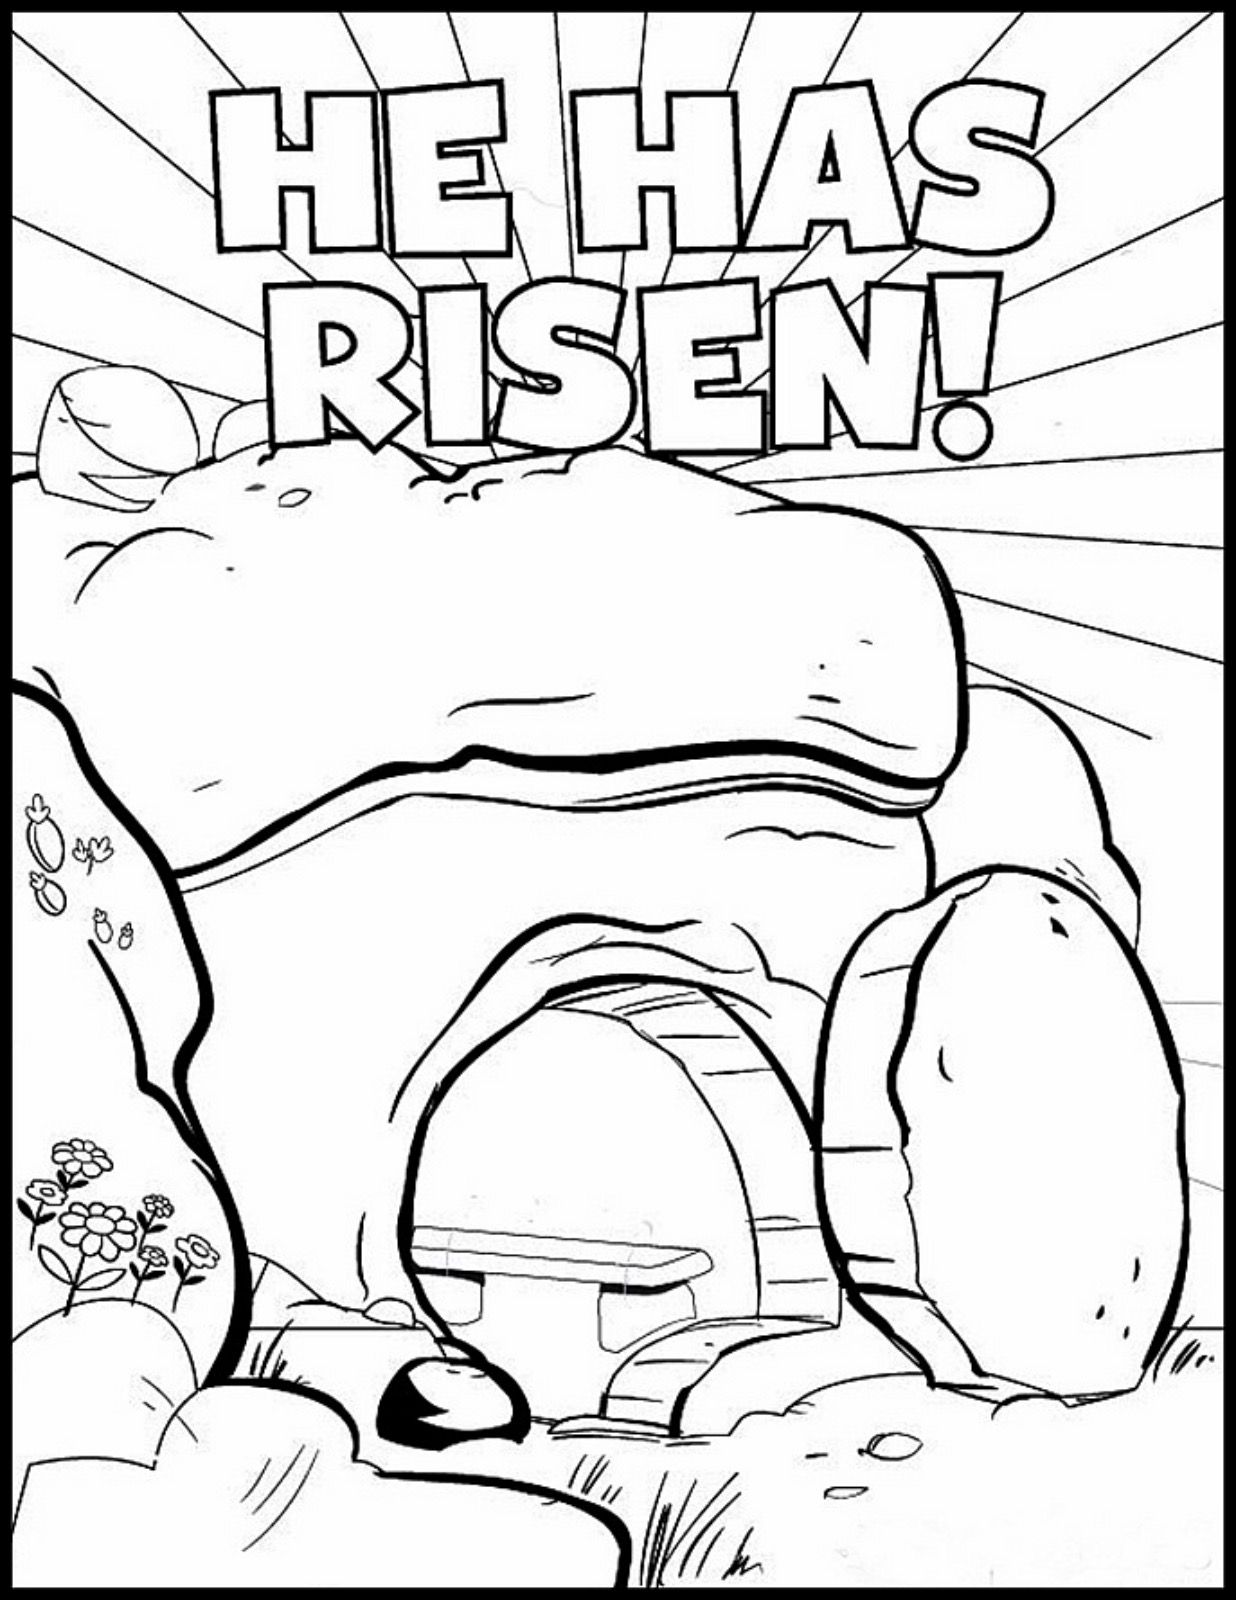 HE HAS RISEN coloring page Easter sunday school, Sunday